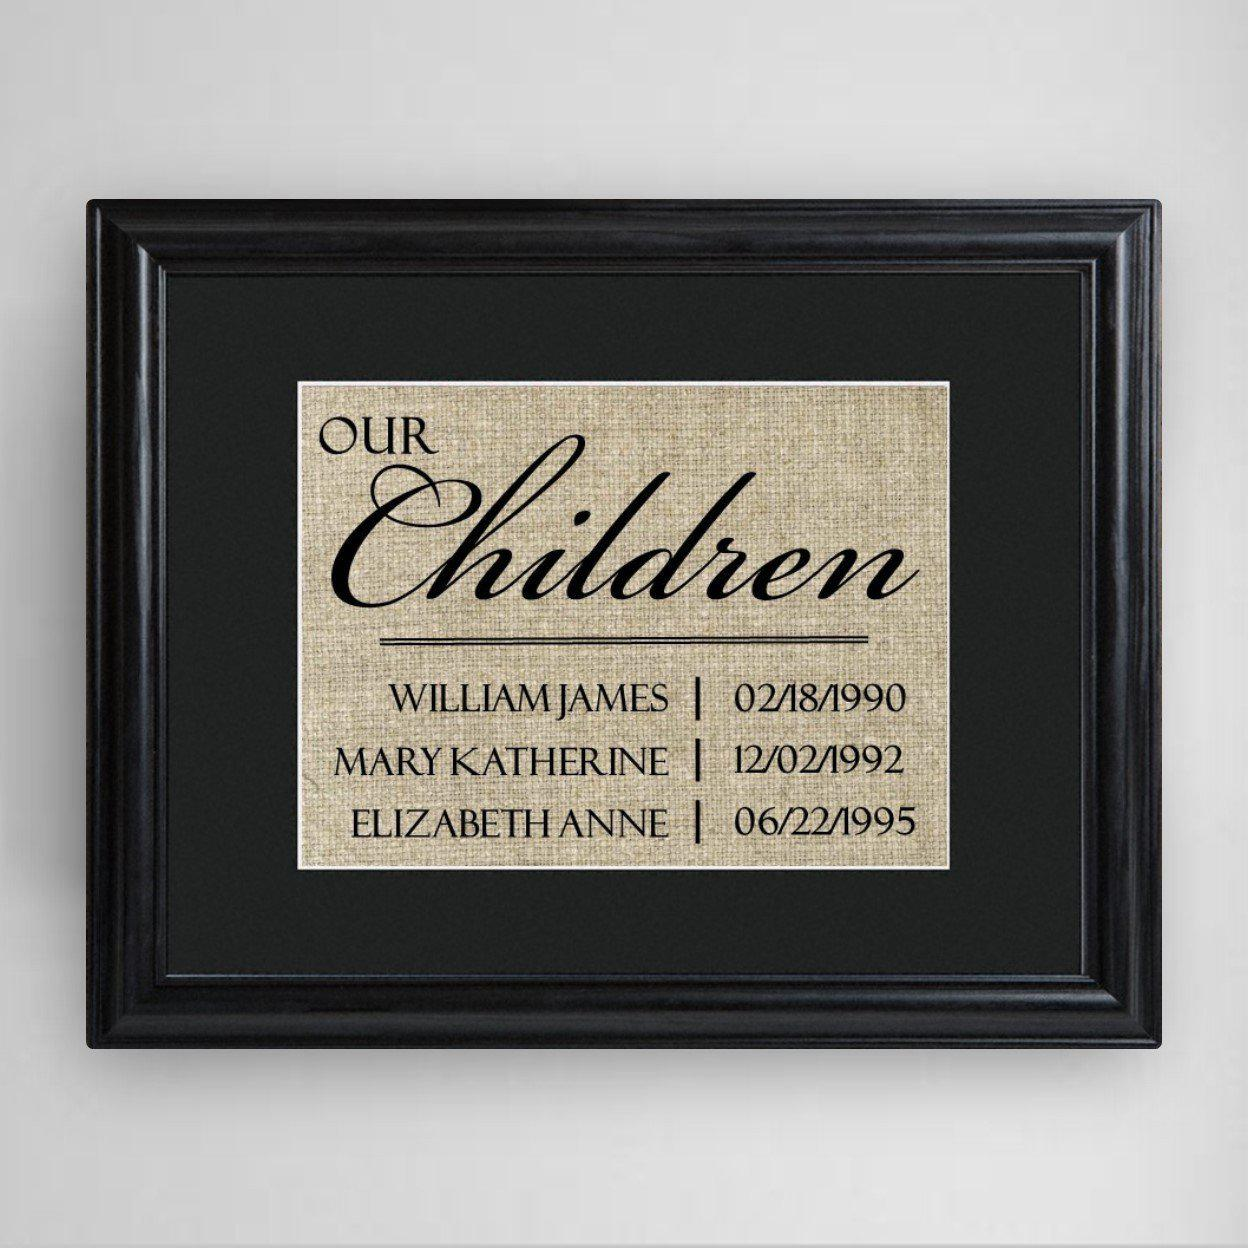 Personalized-Our-Children-Framed-Print